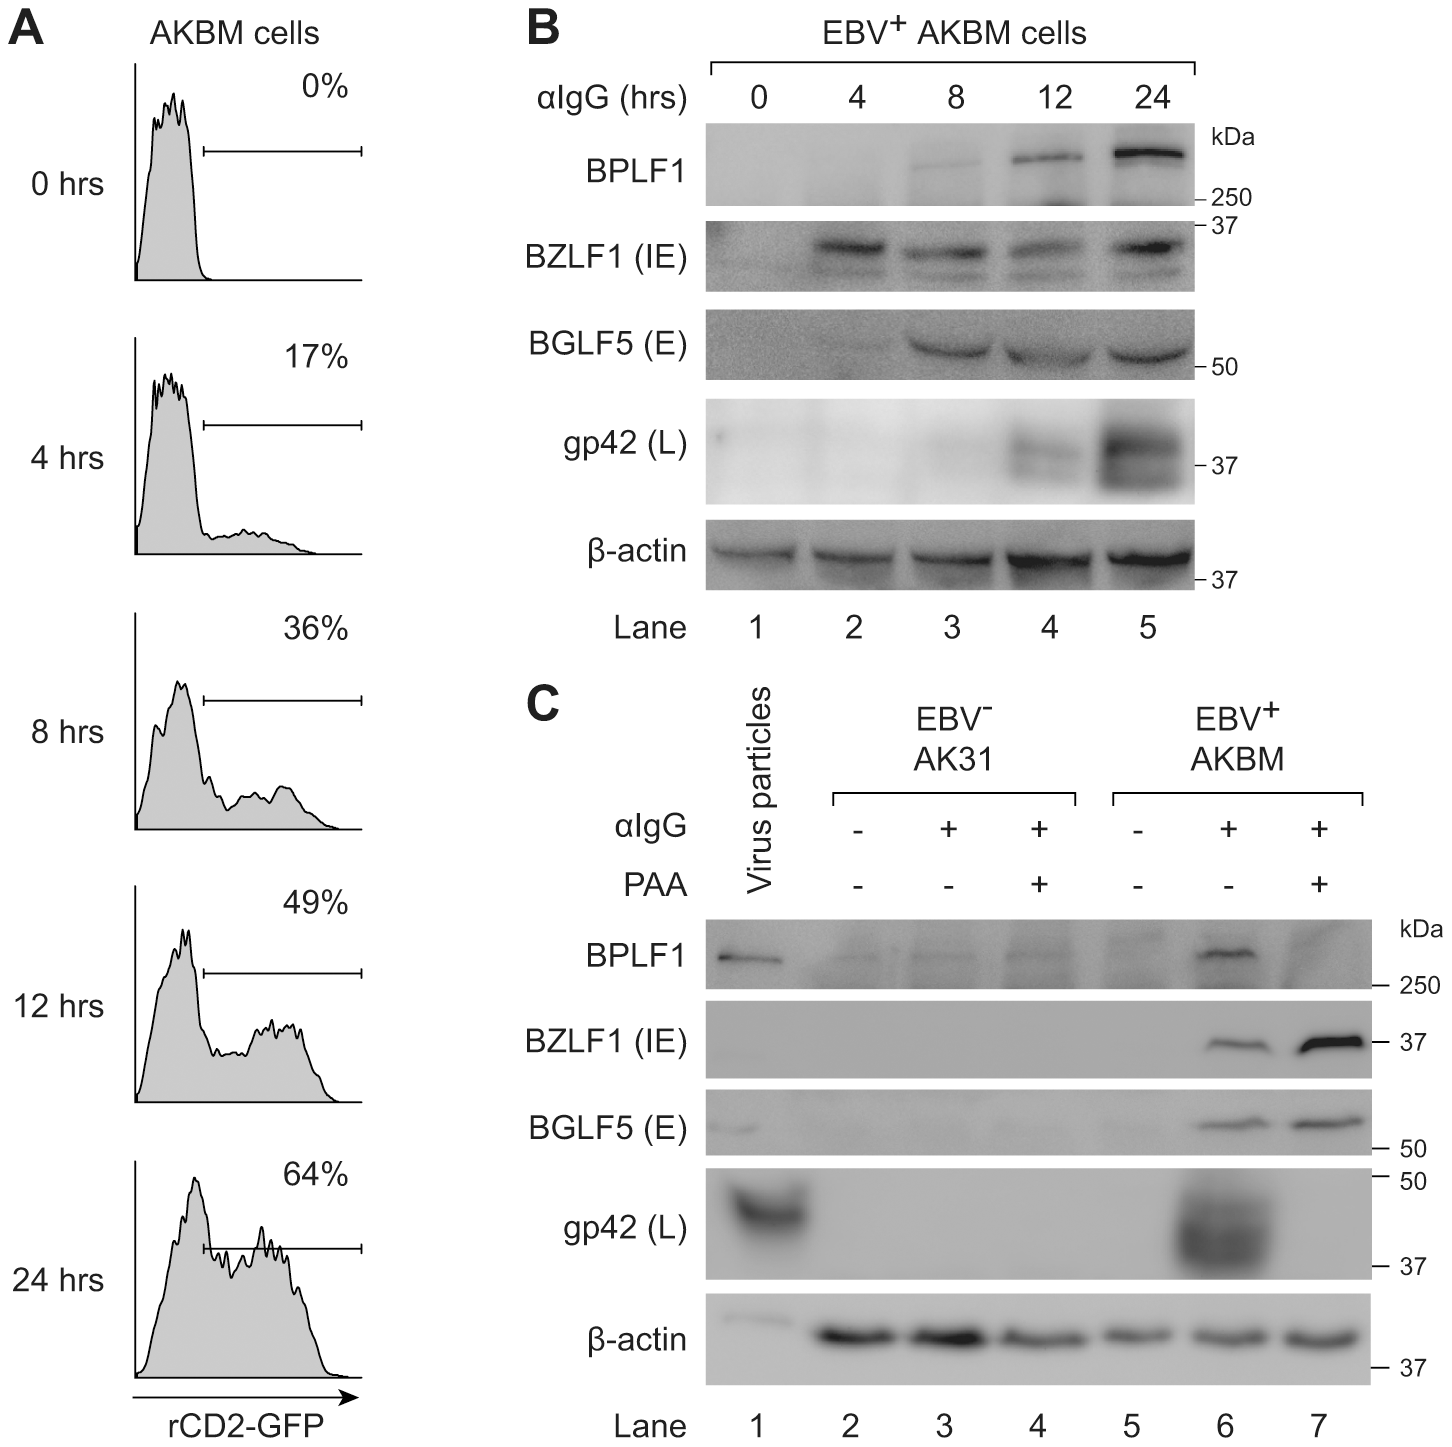 BPLF1 is expressed during the late phase of lytic EBV infection and is incorporated into viral particles.